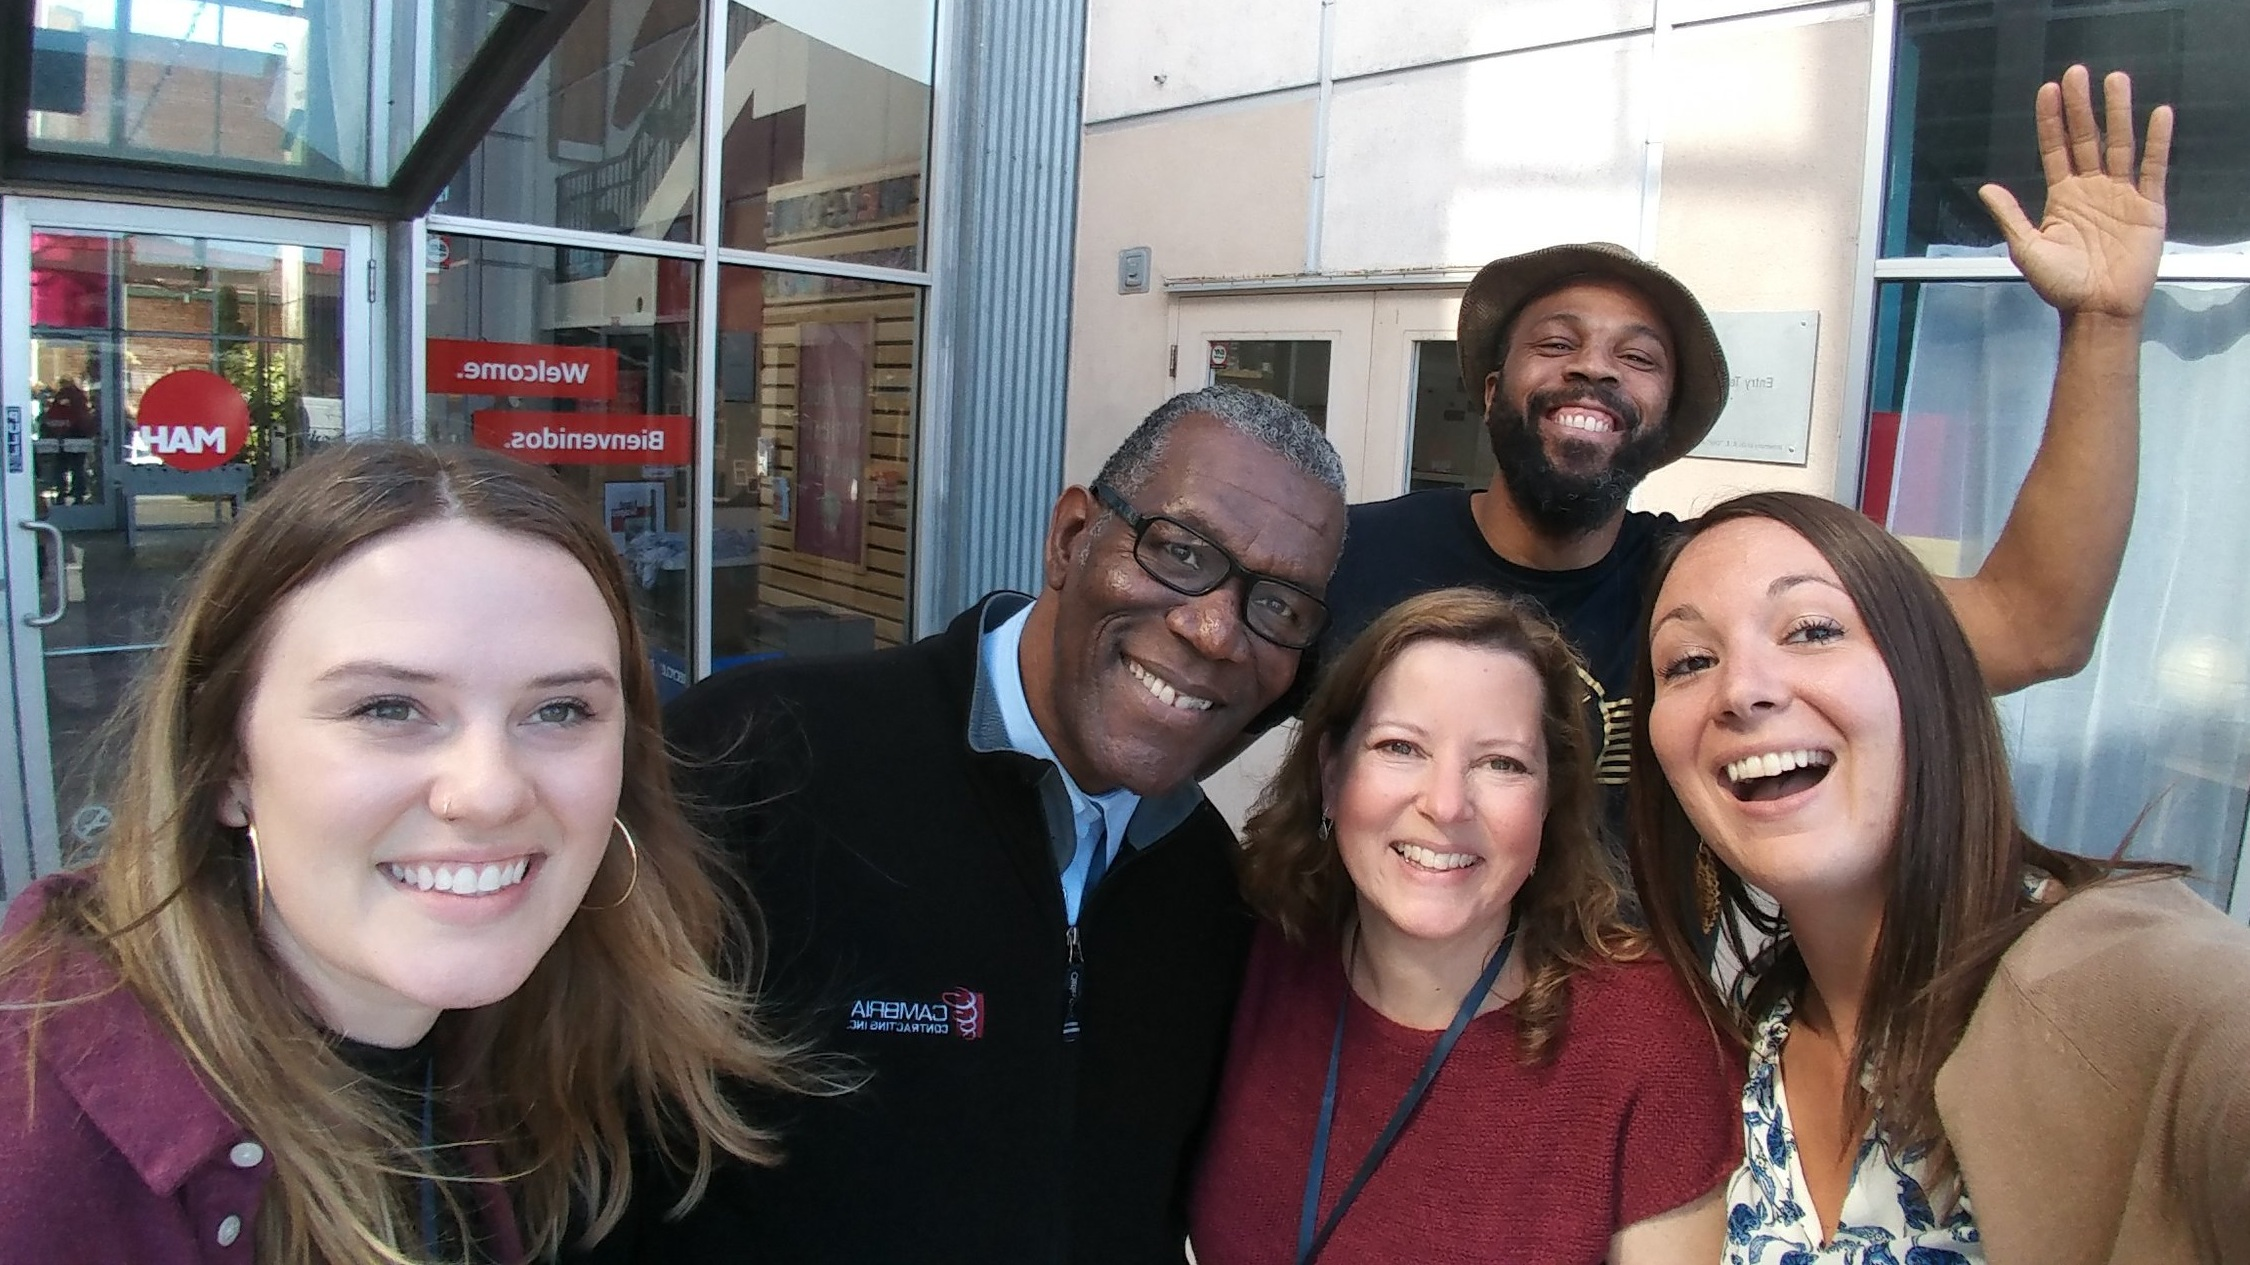 The Heritage Center's OF/BY/FOR ALL team at the Change Network annual retreat: Emily Reynolds, Charles A. Walker, Christine Bacon, Saladin Allah, and Ally Spongr (Photo: Niagara Falls Underground Railroad Heritage Center)